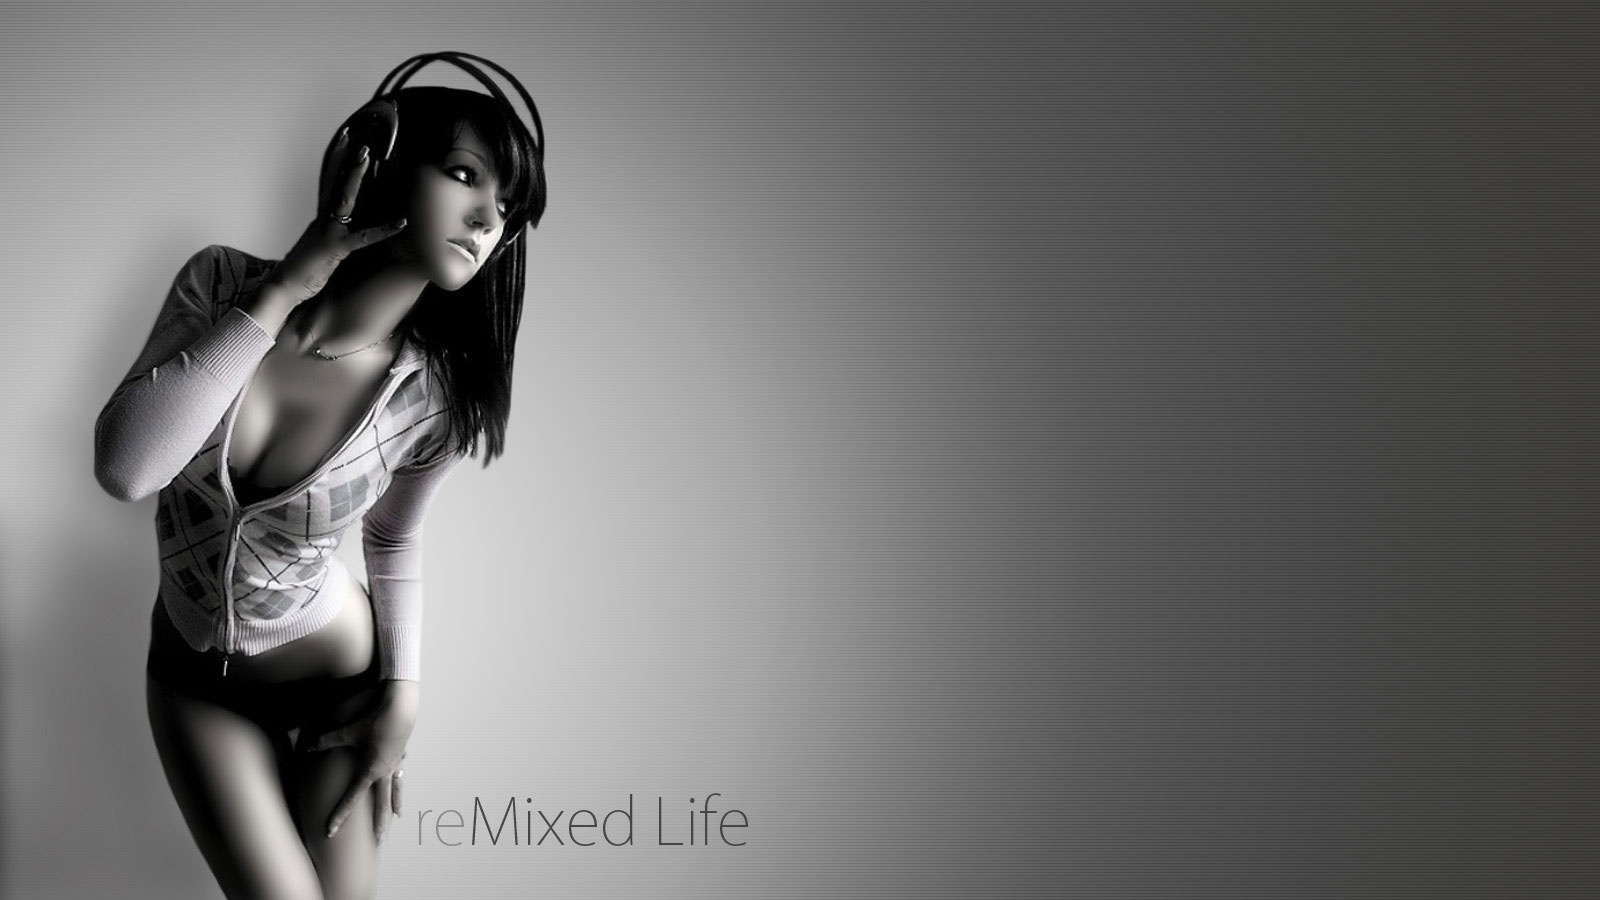 Remixed Life HD and Wide Wallpapers